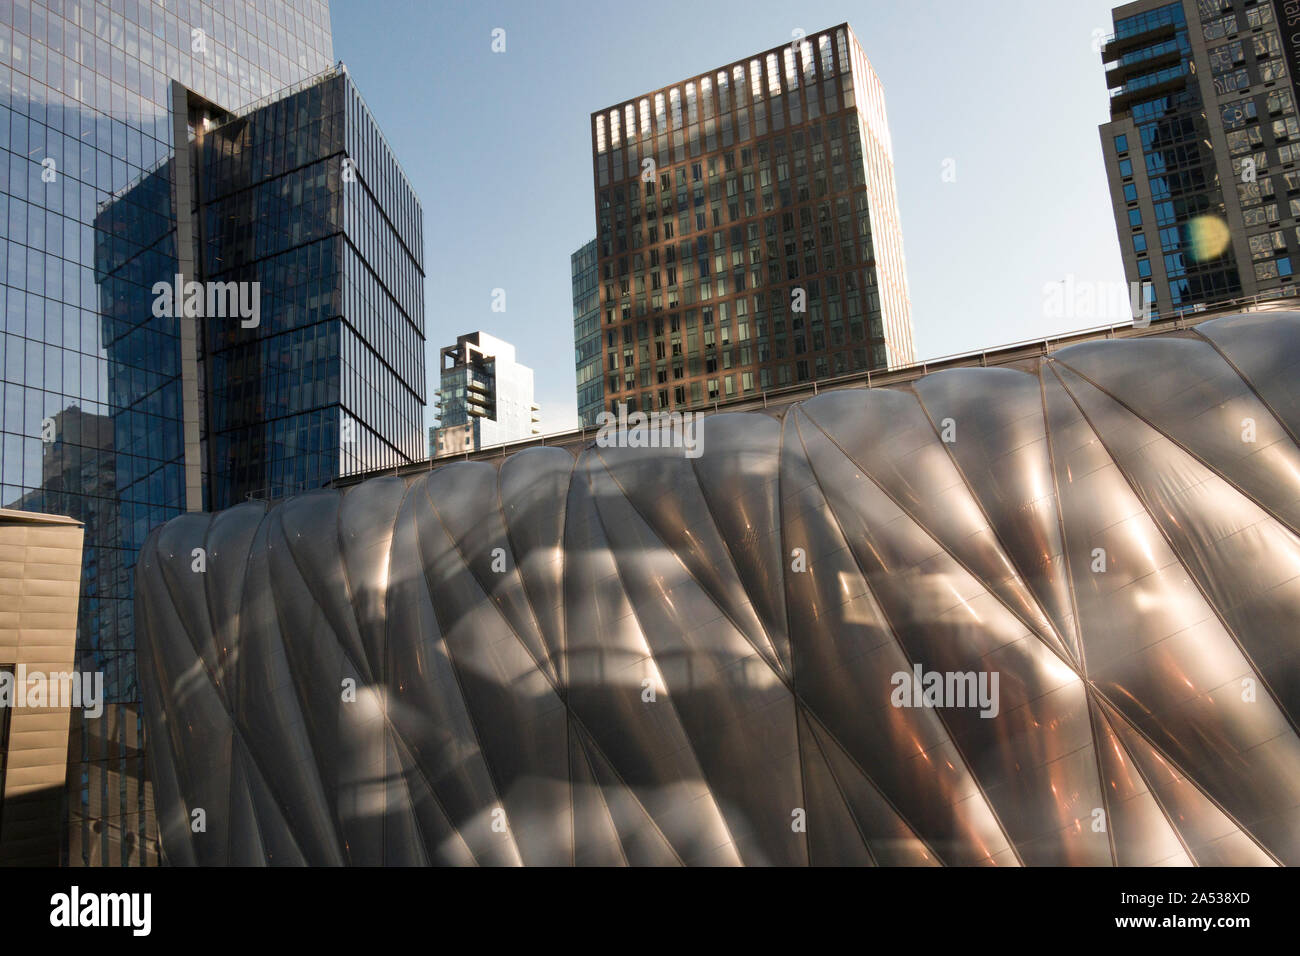 The Vessel structure and The Shed, a cultural venue, are in  the Hudson Yards Complex, New York City, USA Stock Photo